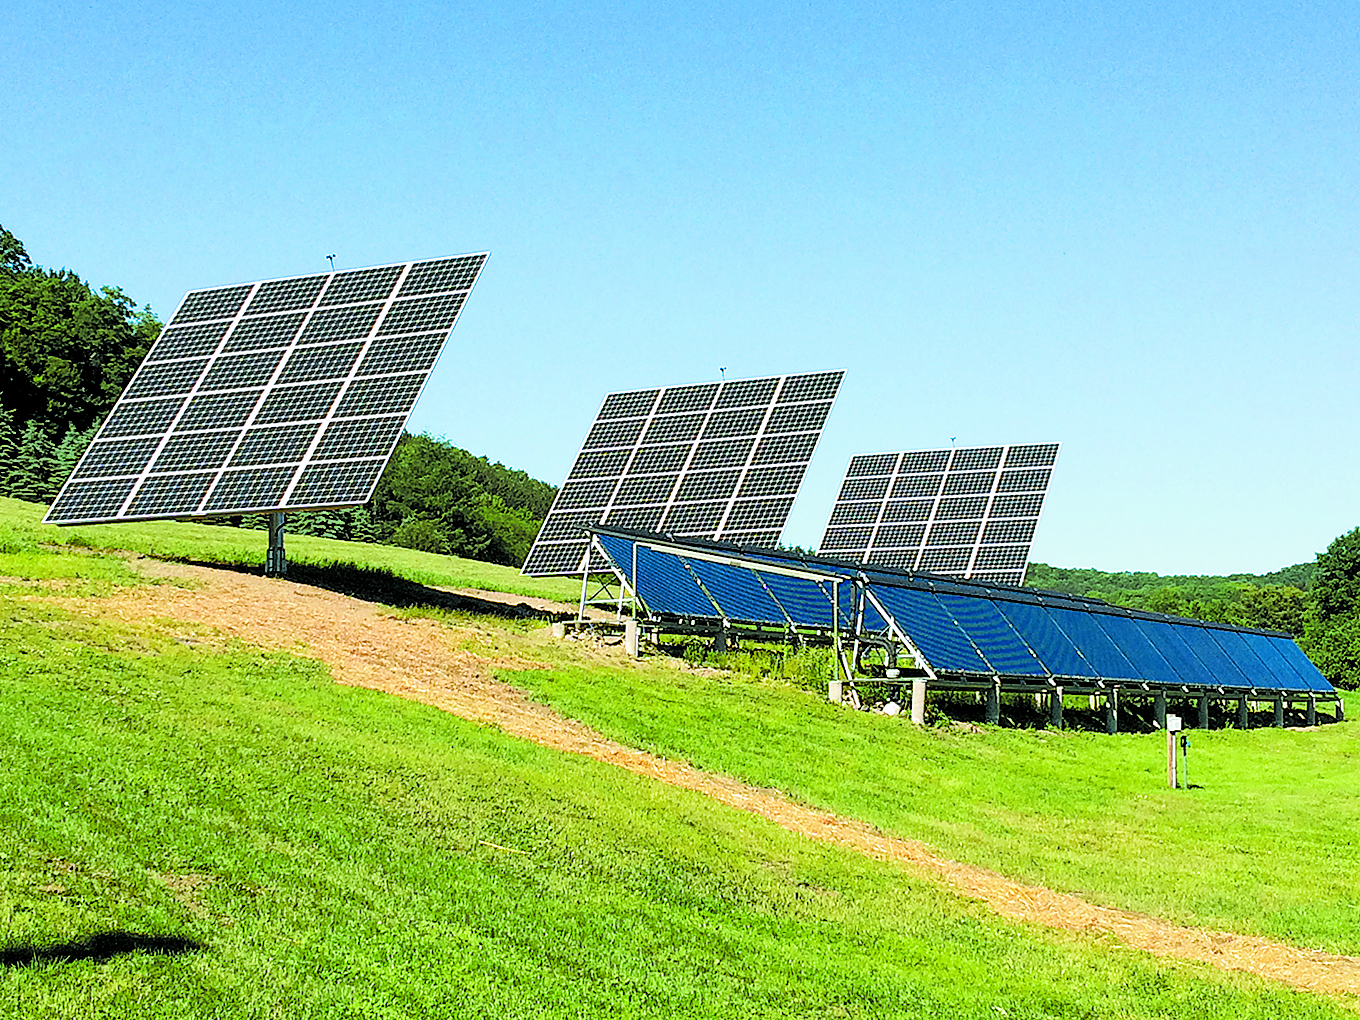 The PV solar tracking system sits above the solar thermal evacuated tube arrays. Courtesy photos.